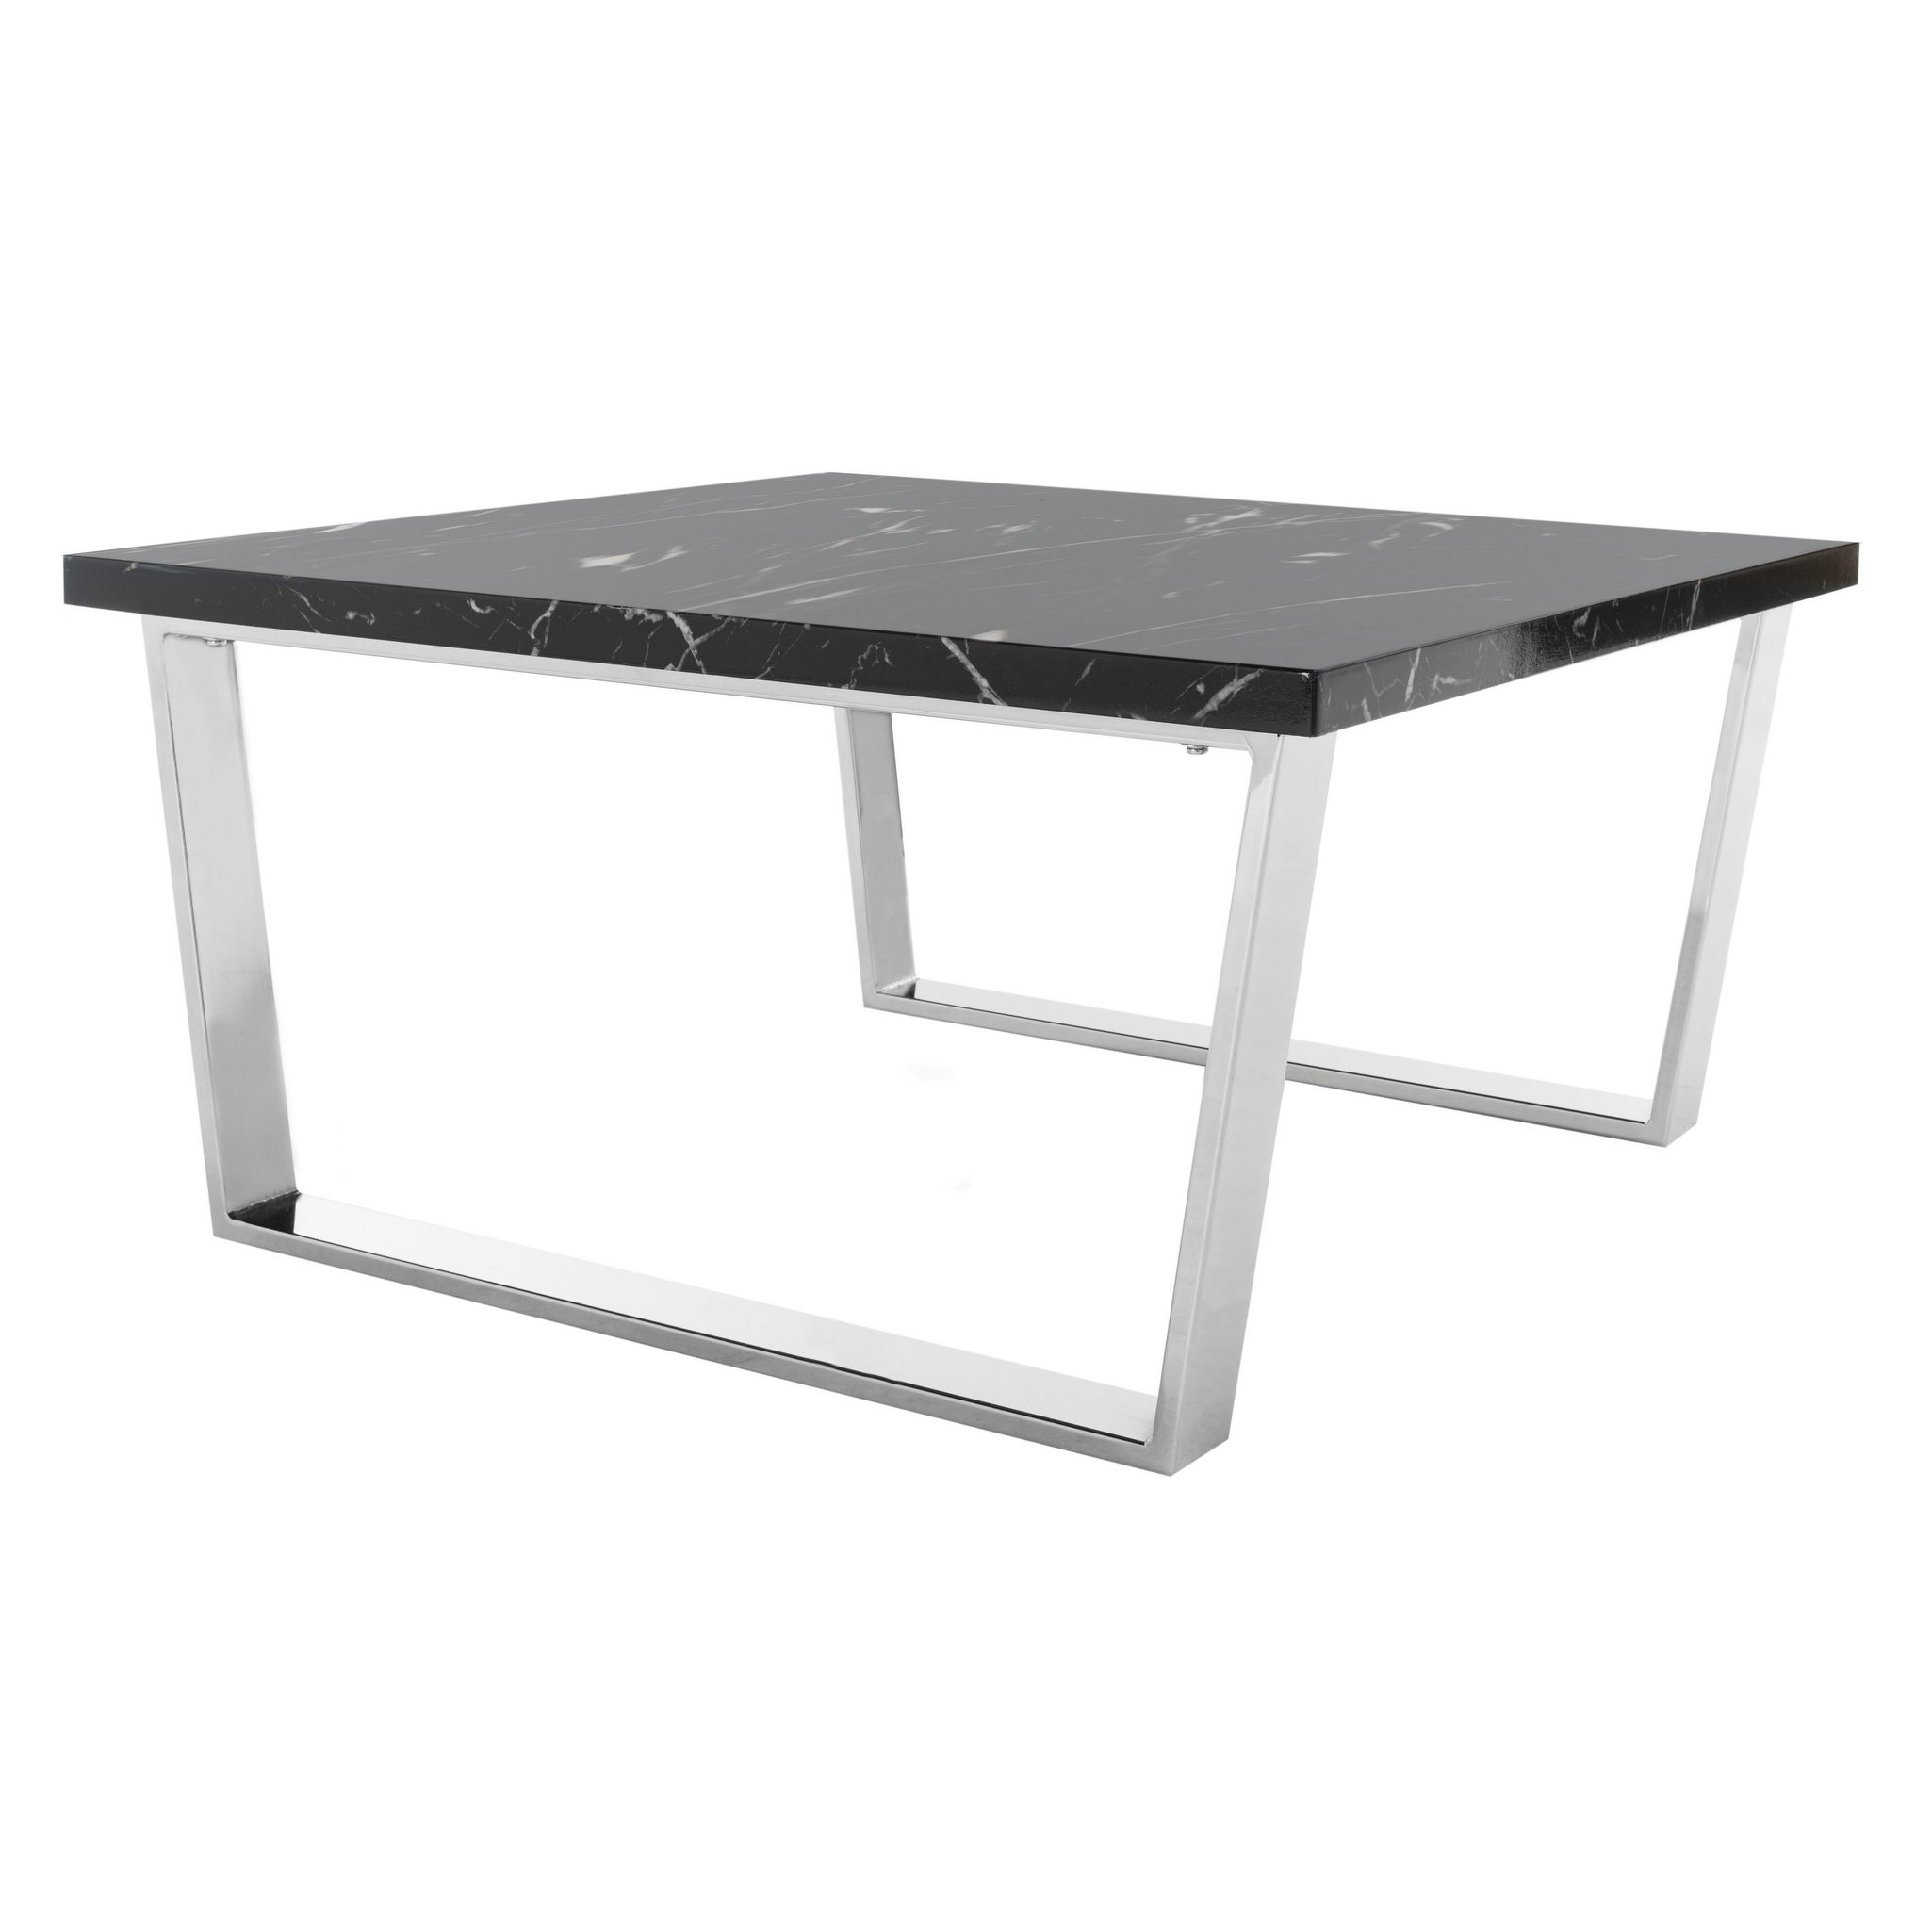 safavieh carmen black chrome square coffee table metal accent free shipping today home tables target wall decor pottery barn francisco dining carpet cover strip chair reclaimed